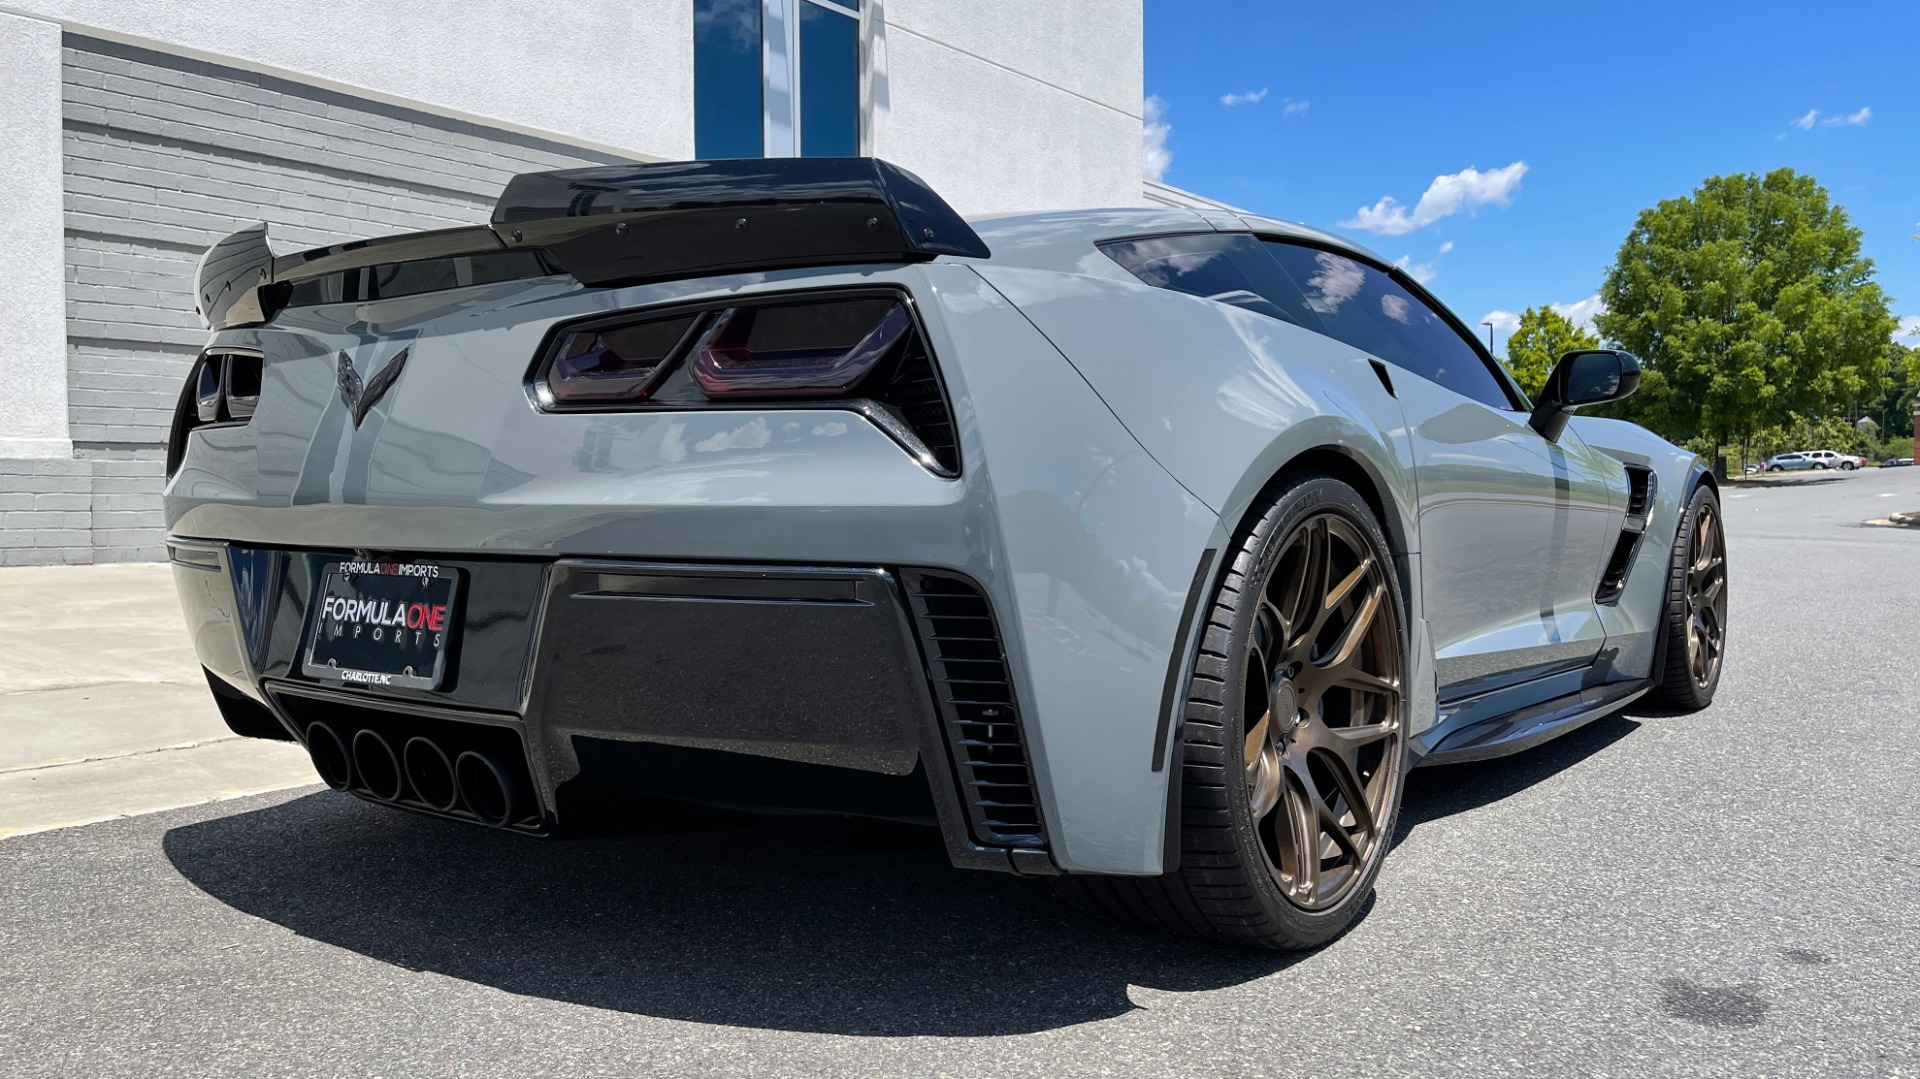 Used 2019 Chevrolet CORVETTE GRAND SPORT 3LT / SUPERCHARGED 6.2L V8 / NAV / REARVIEW for sale Sold at Formula Imports in Charlotte NC 28227 4